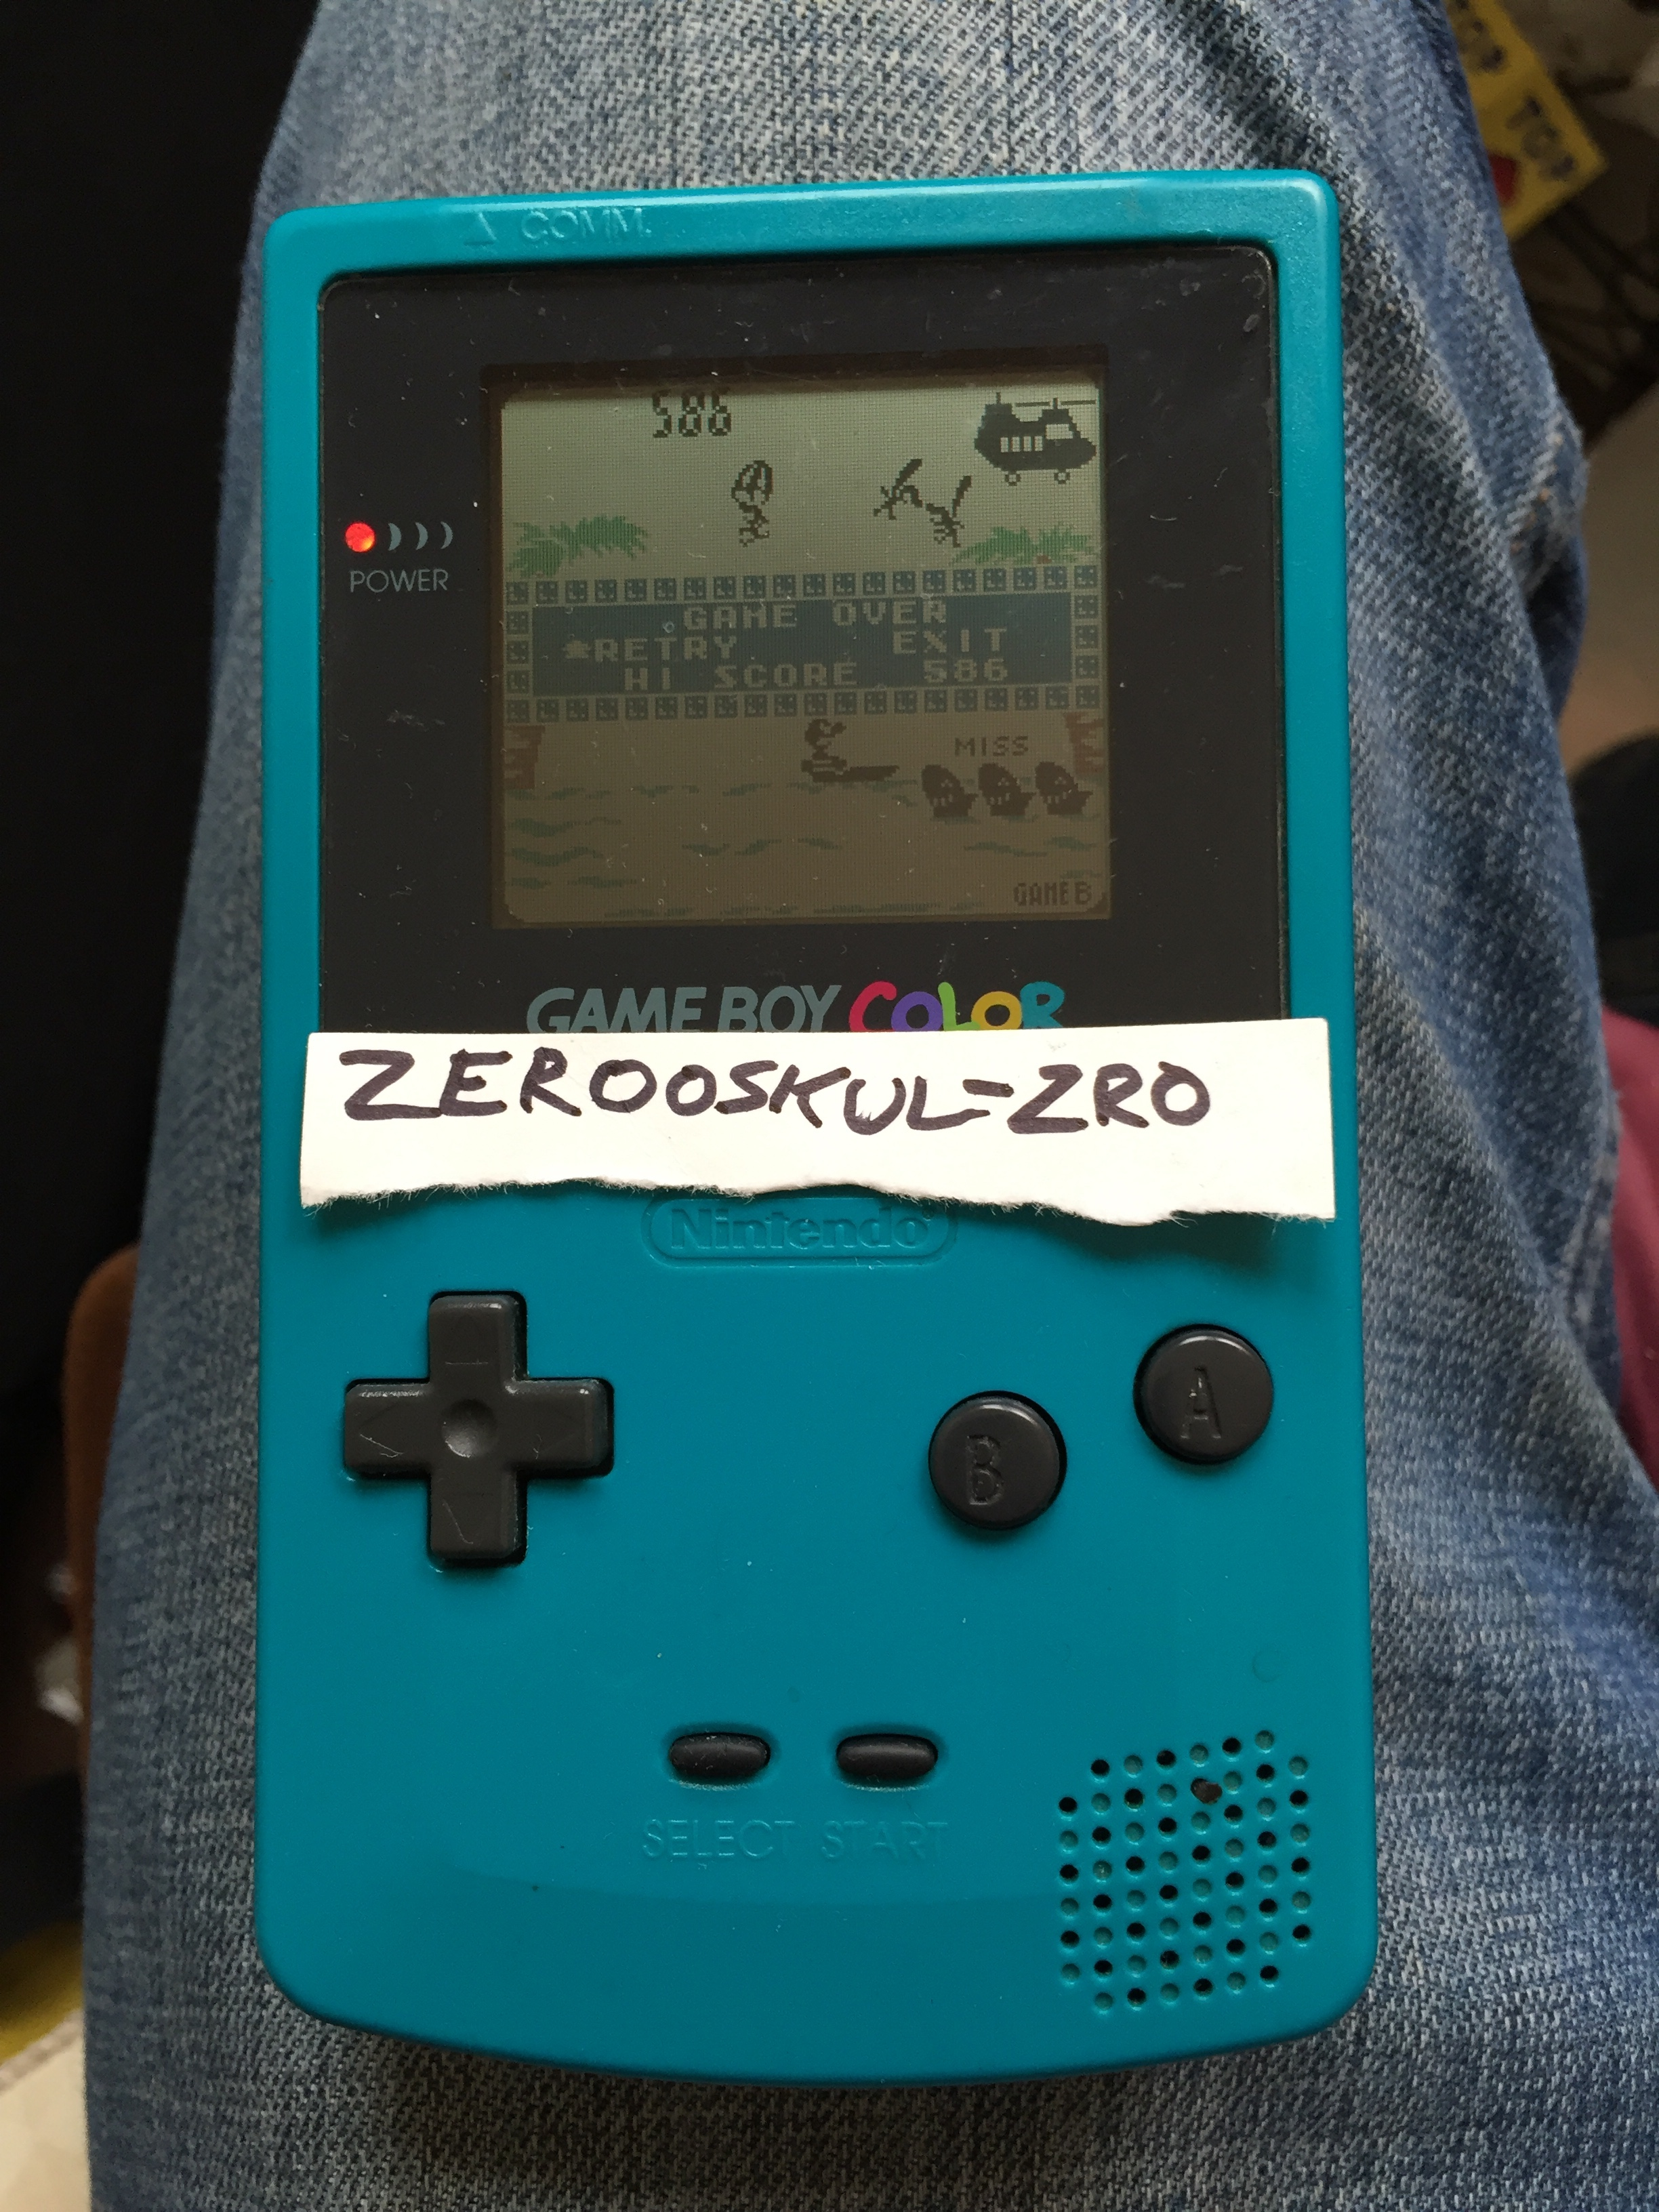 zerooskul: Game & Watch Gallery 2: Parachute: Classic: Hard (Game Boy Color) 586 points on 2018-07-22 11:25:11